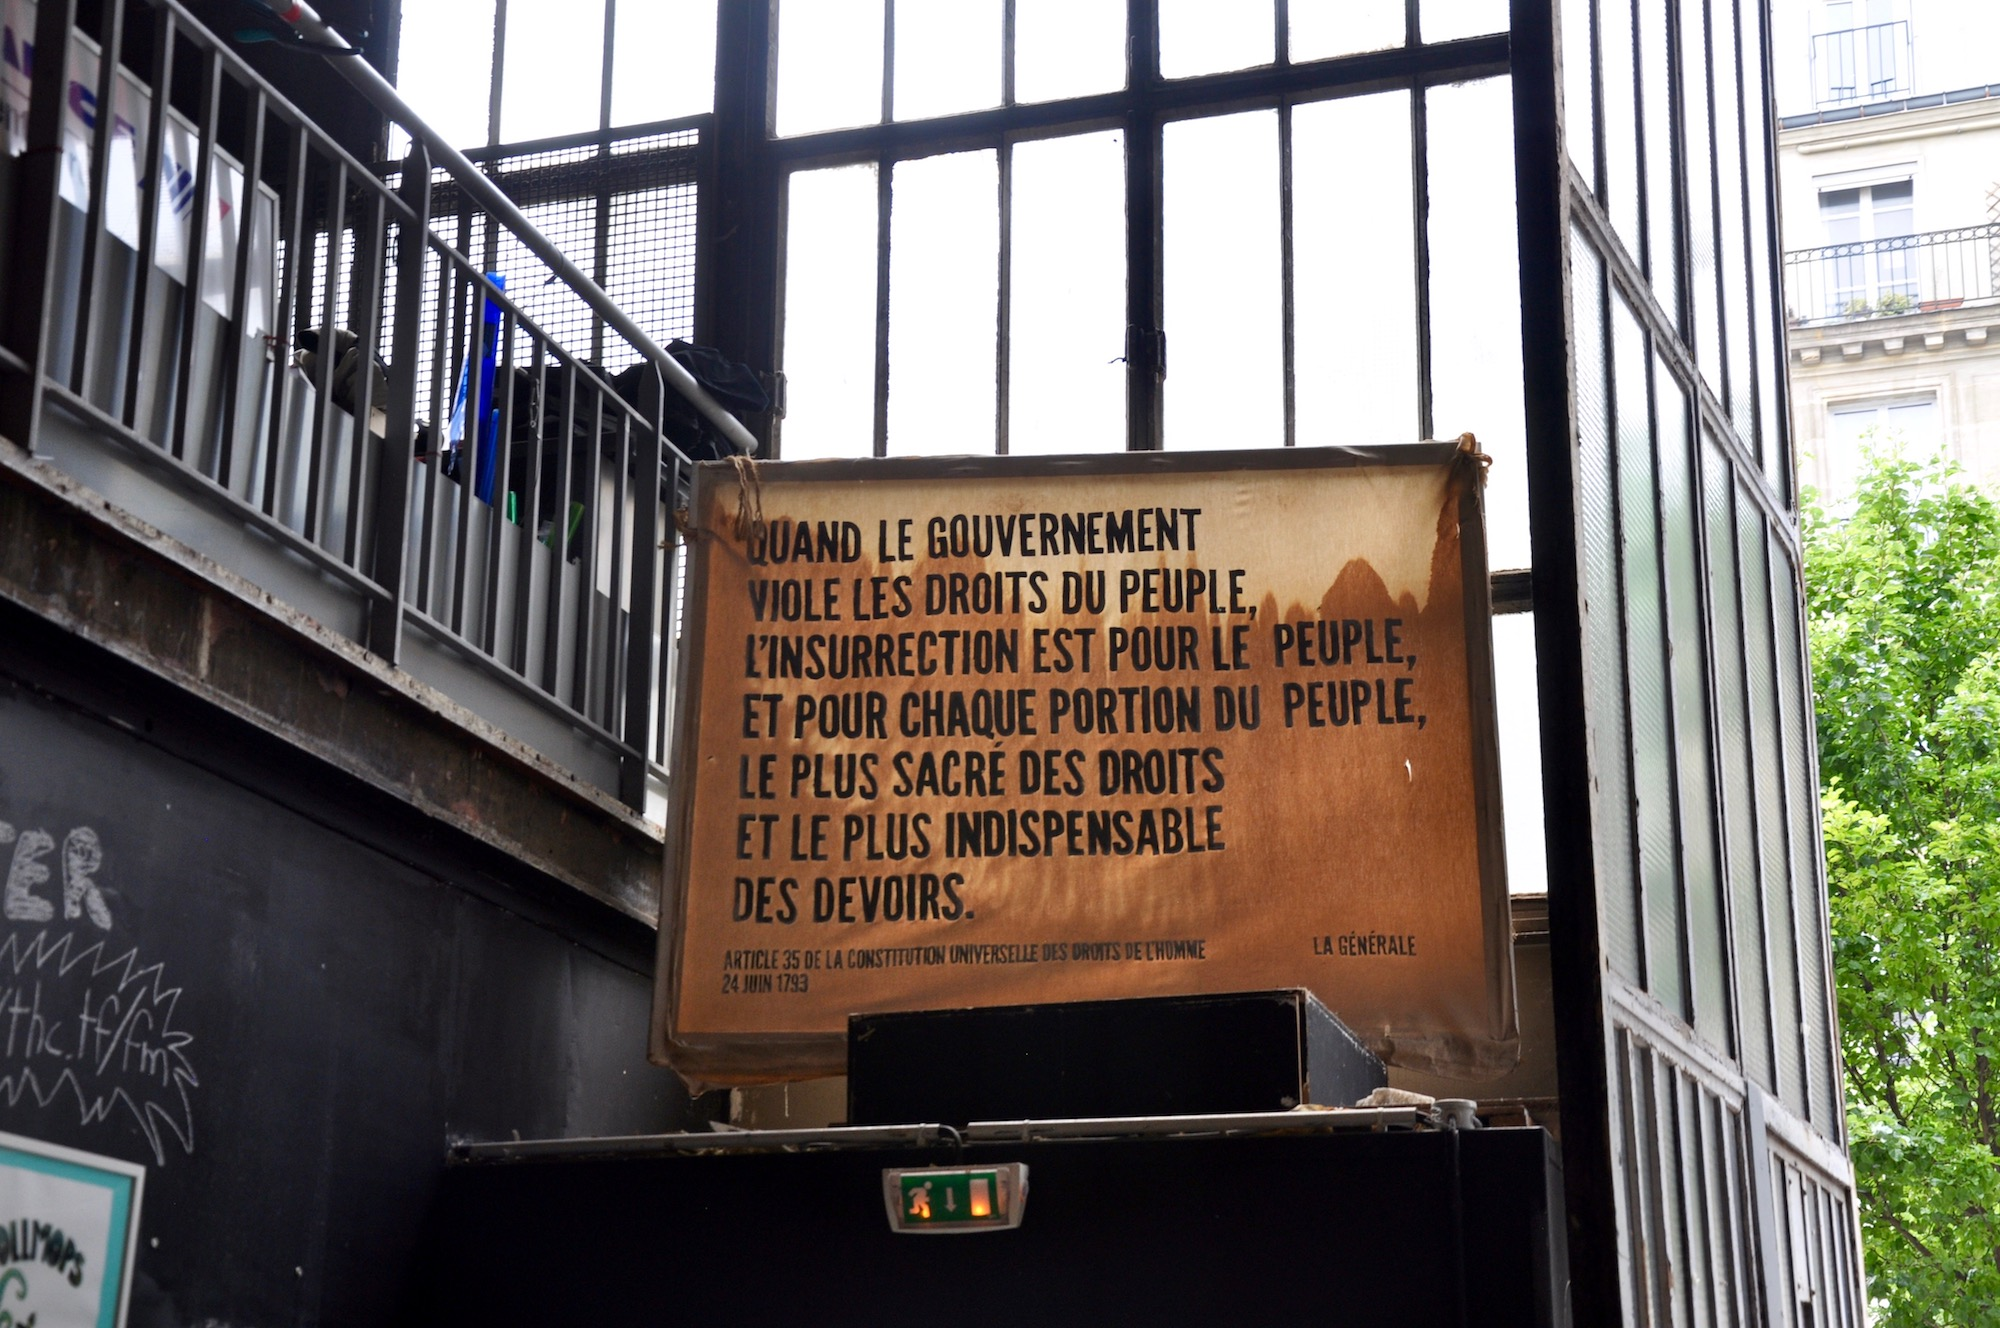 HiP Paris Blog discovers the many artist squats in Paris like La Générale, where human rights and freedom of speech and creation are key, according to this manifesto.